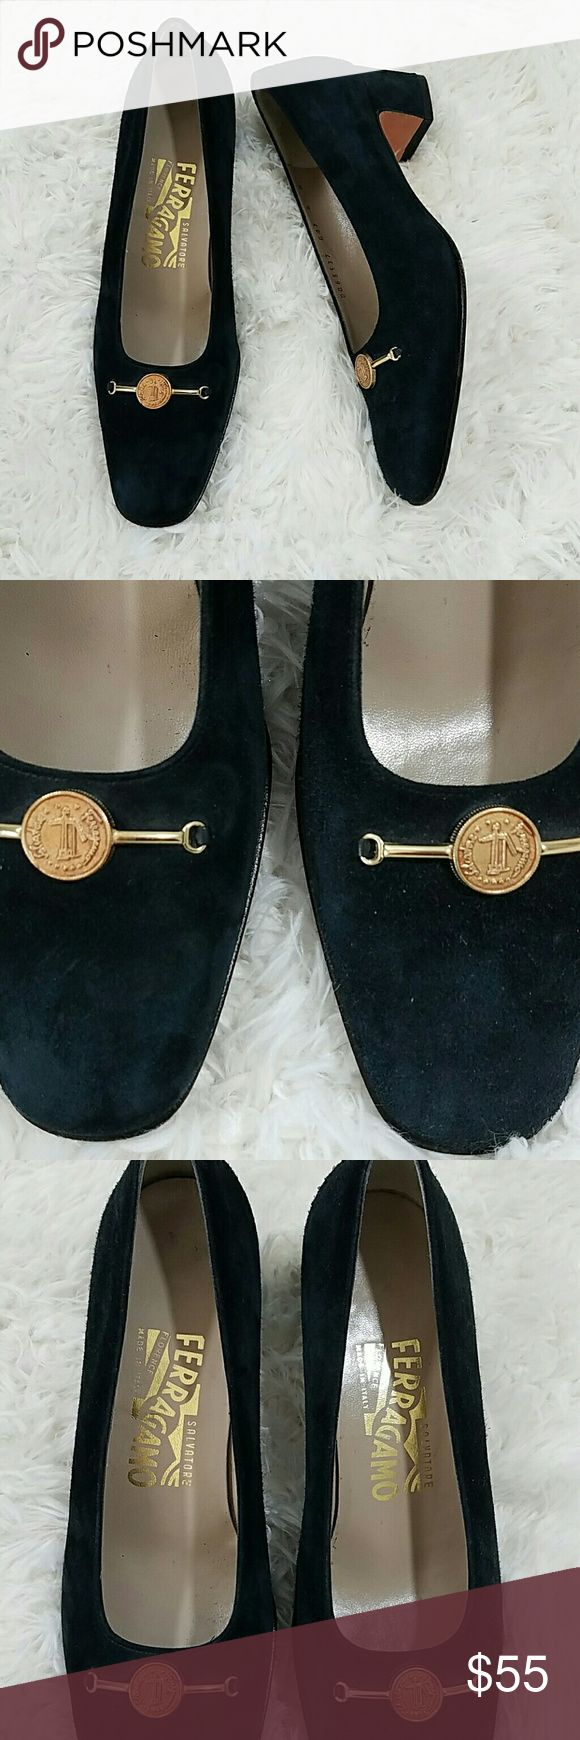 Ferragamo Navy Blue Suede Pumps size 6 Beautiful suede pumps by Ferragamo with some Ferragamo gold coin at the toe.  They are navy blue suede.  They have a square suede heel.   Ferragamo pumps are navy blue. Ferragamo Shoes Heels